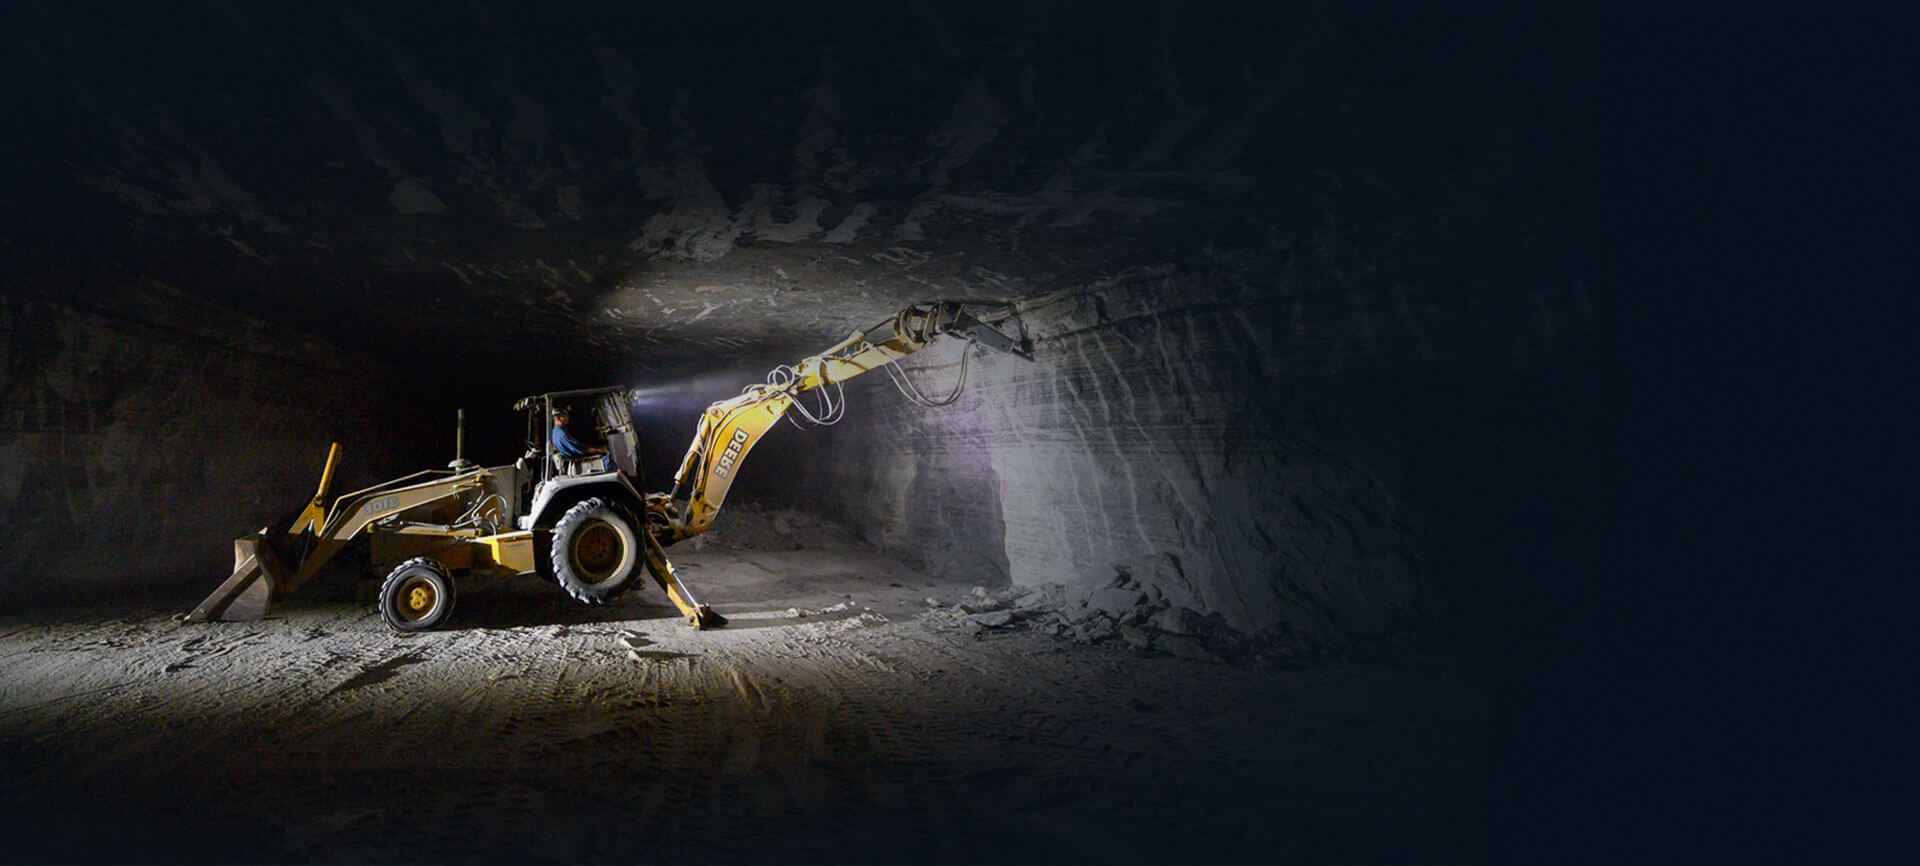 Image of Excavator in Salt Mine